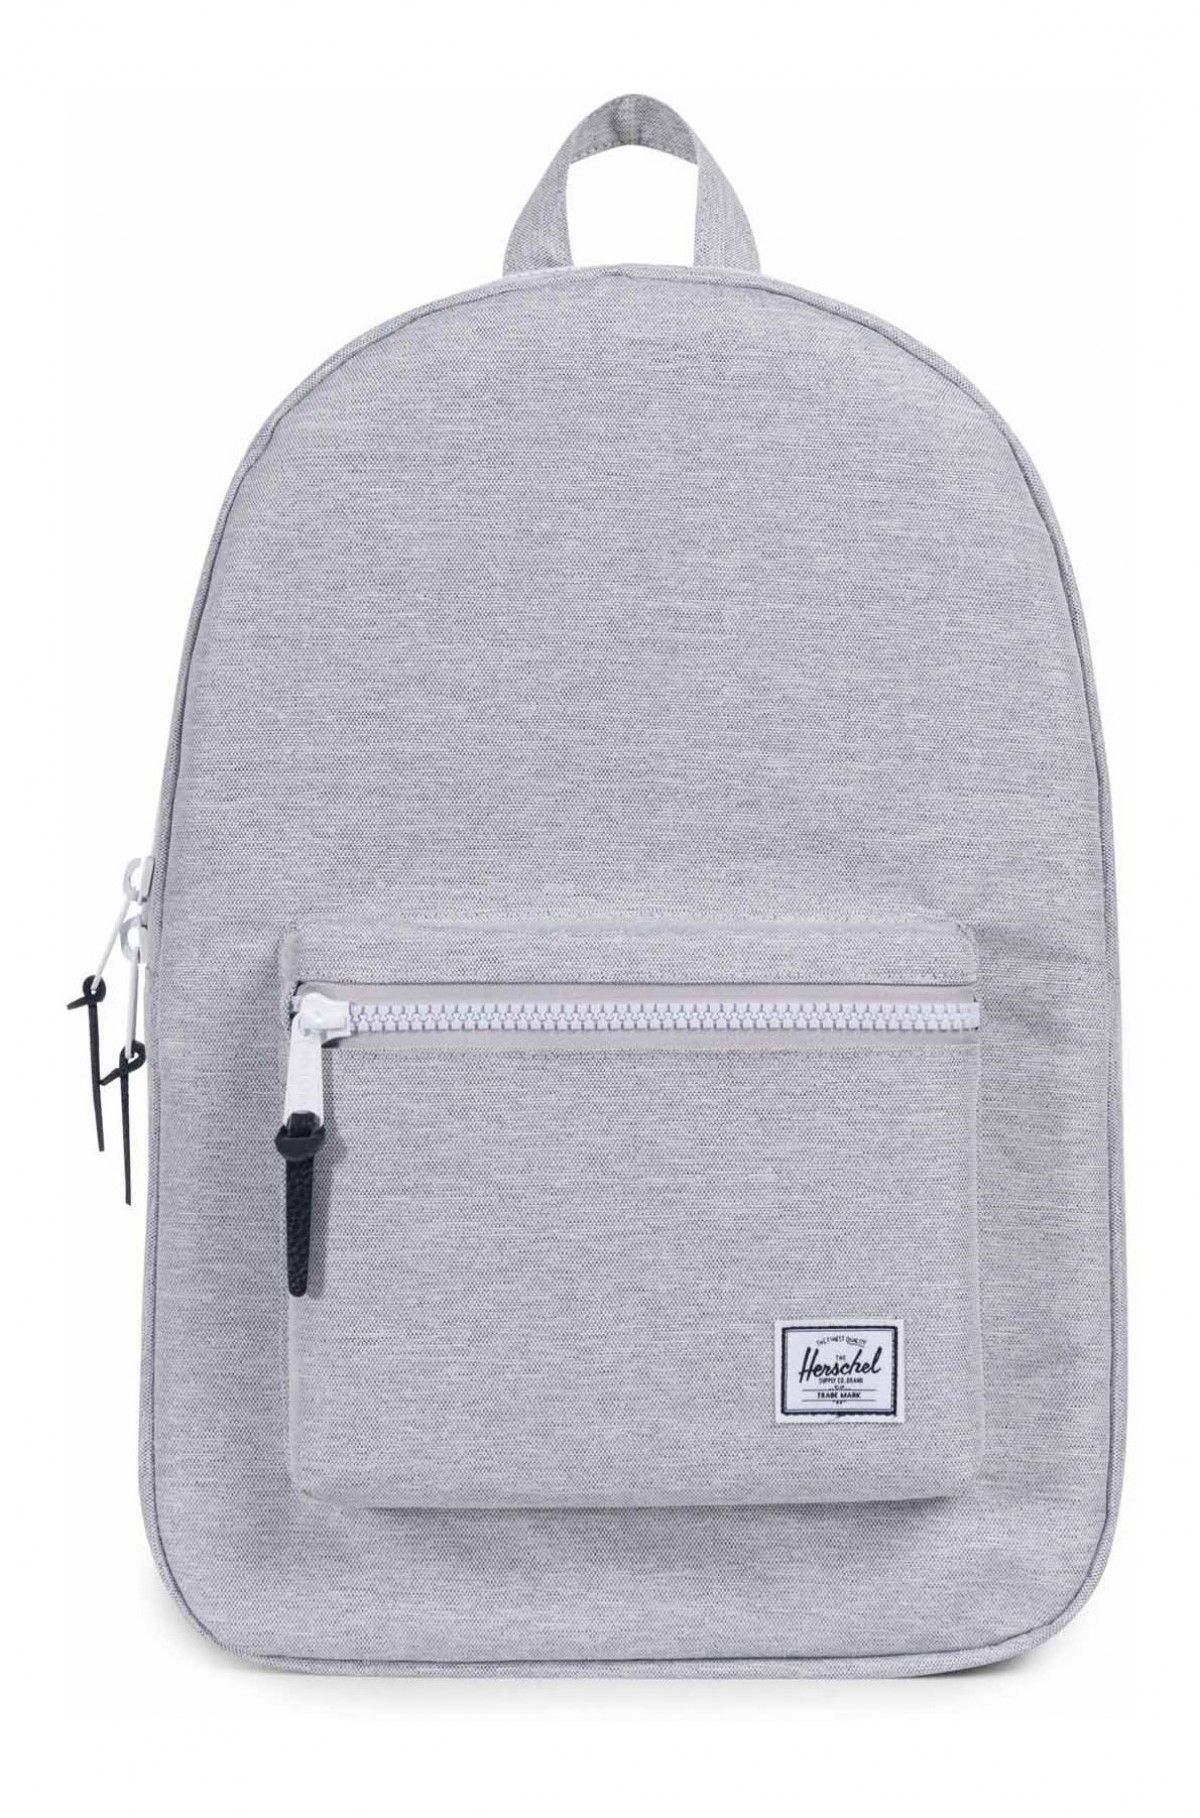 0a0eec9671c Herschel Settlement Backpack 600D Poly Light Grey Crosshatch ...